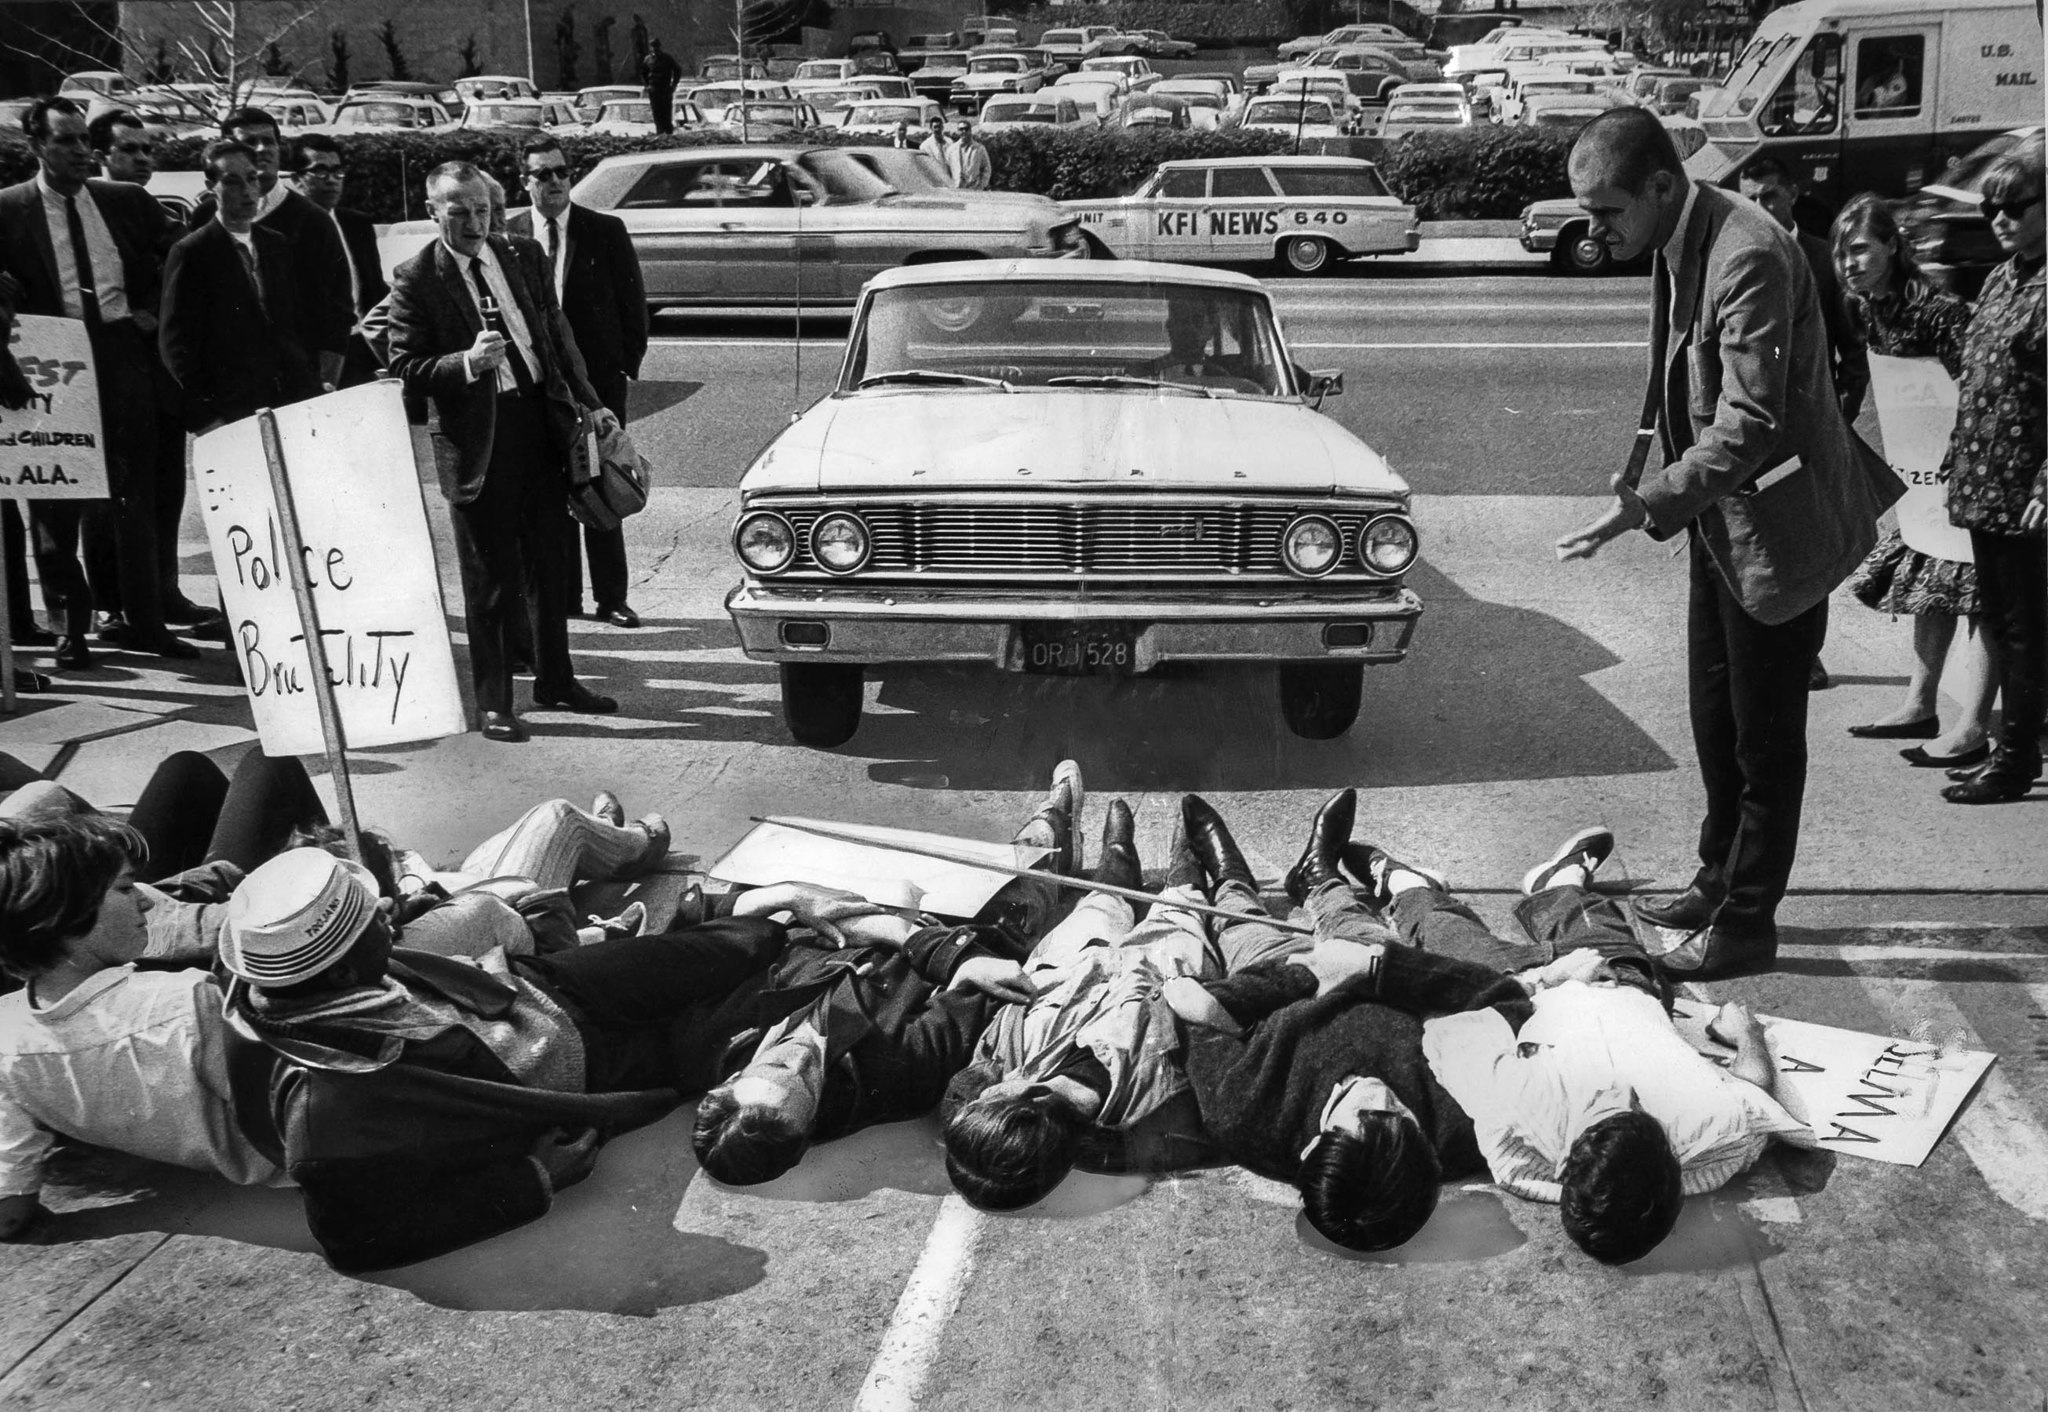 March 10, 1965: Deputy U.S. marshal, right, lays down the law to group of demonstrators lying across